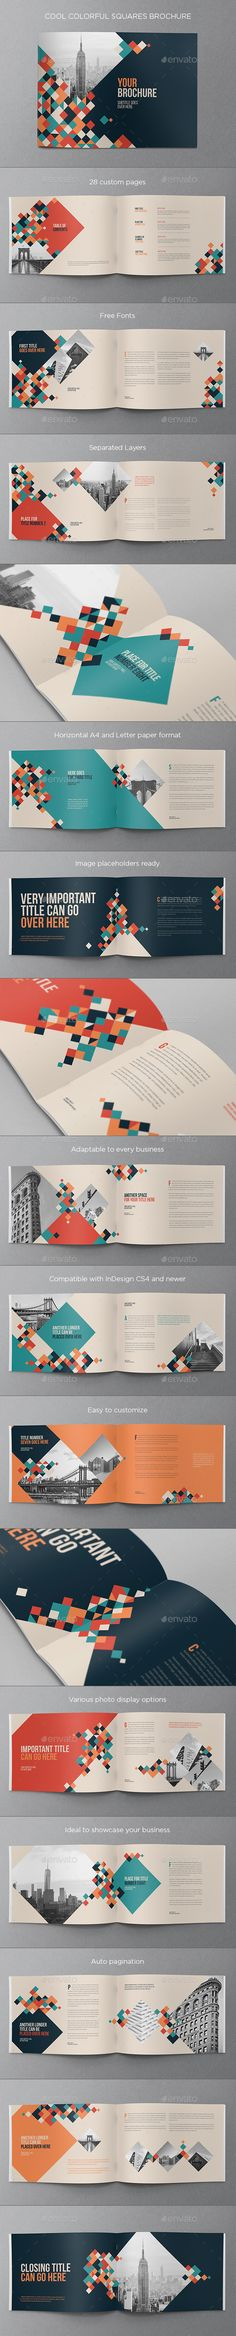 Cool Colorful Squares Brochure Template InDesign INDD. Download here: http://graphicriver.net/item/cool-colorful-squares-brochure/16872691?ref=ksioks